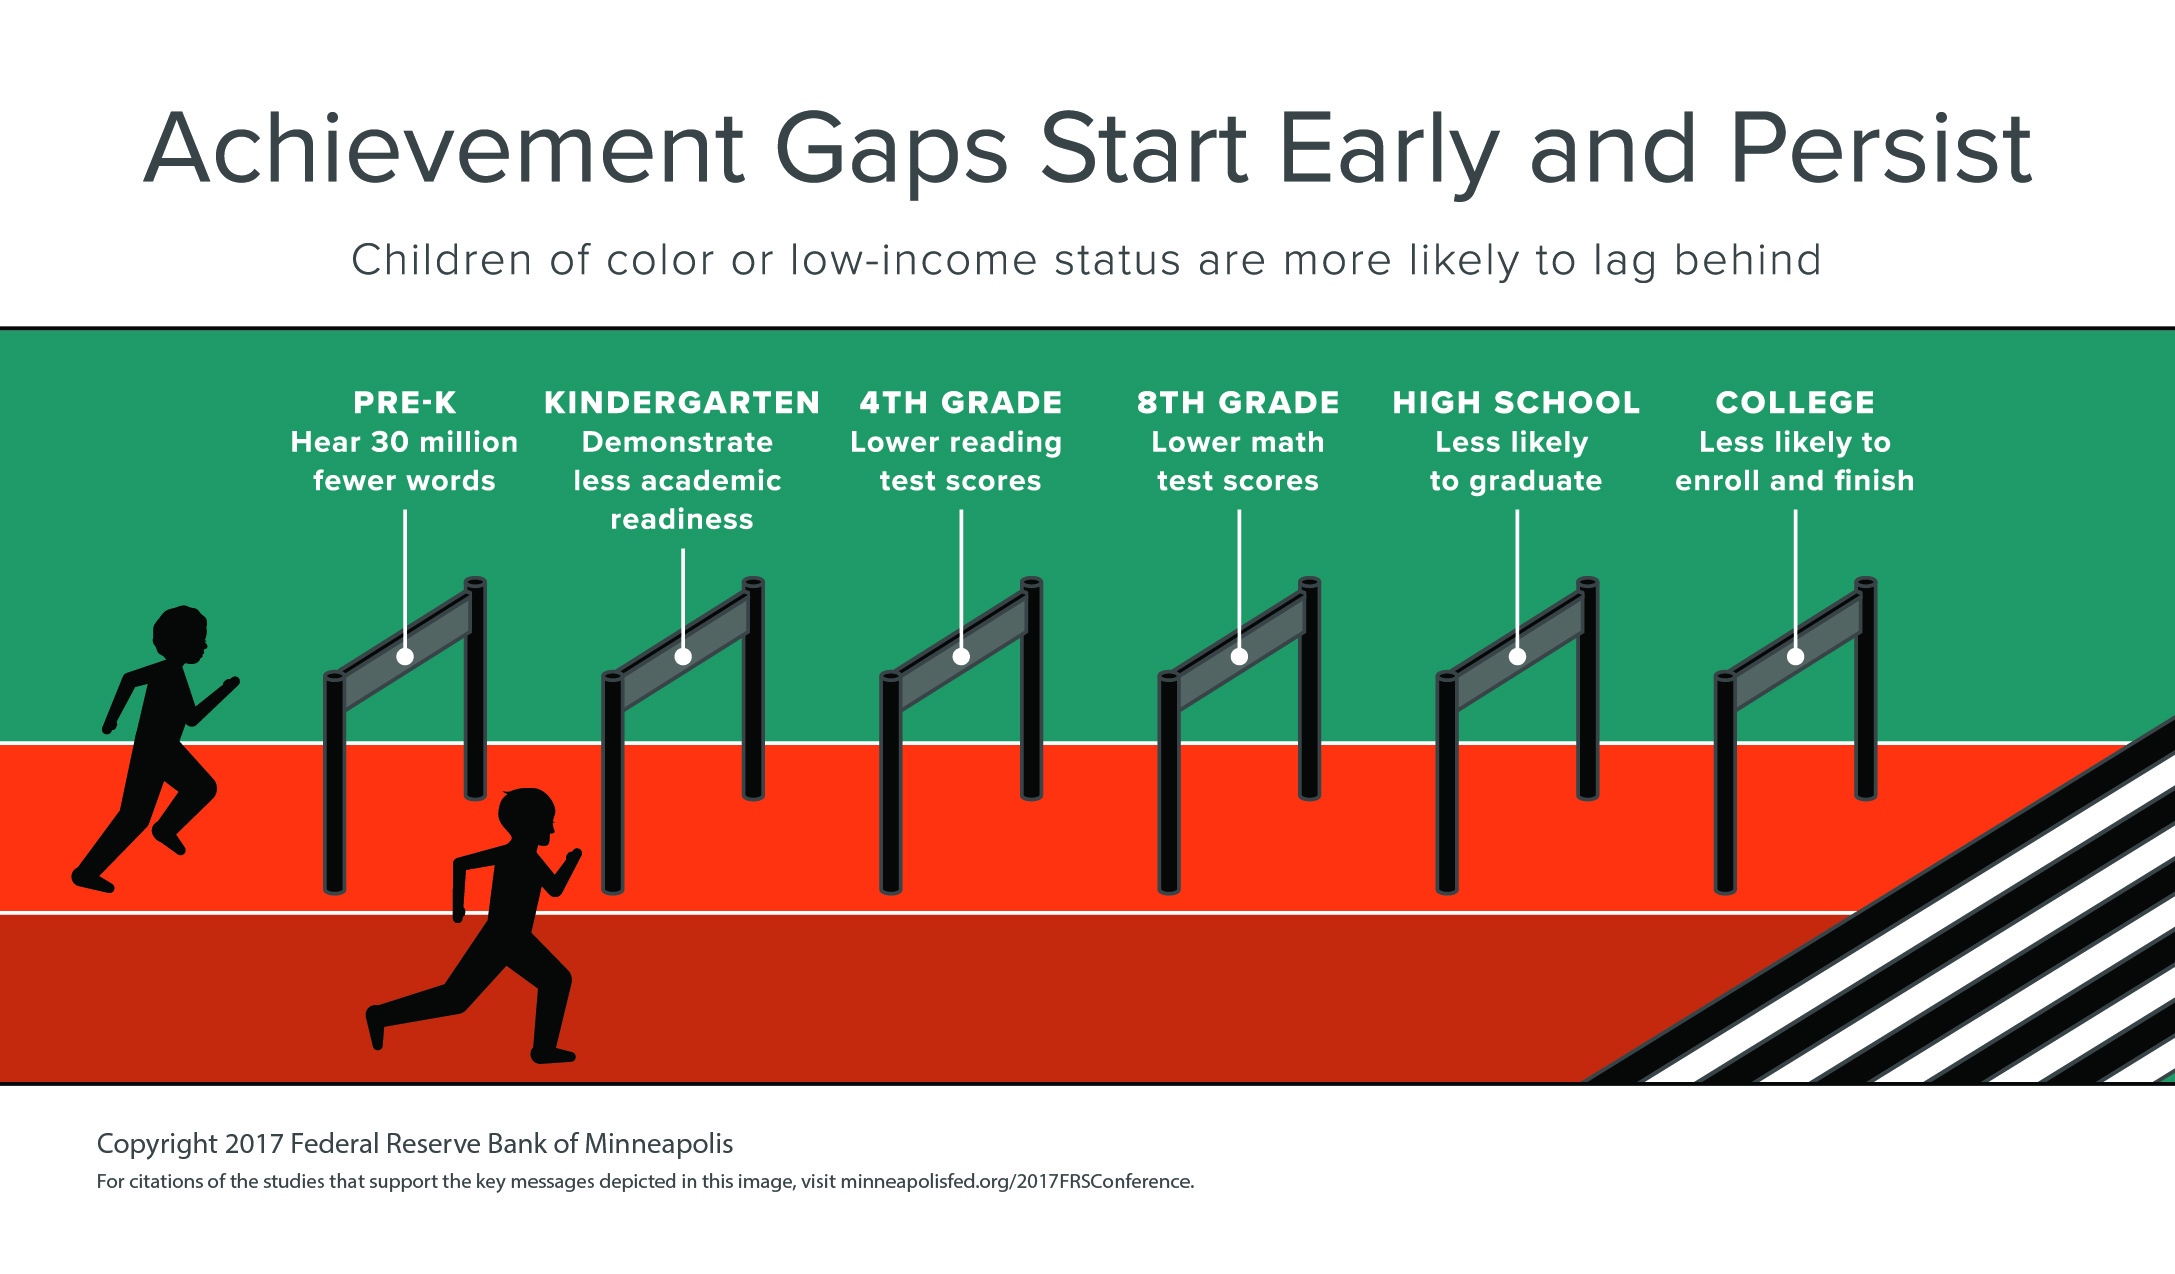 Achievement Gaps Start Early and Persist